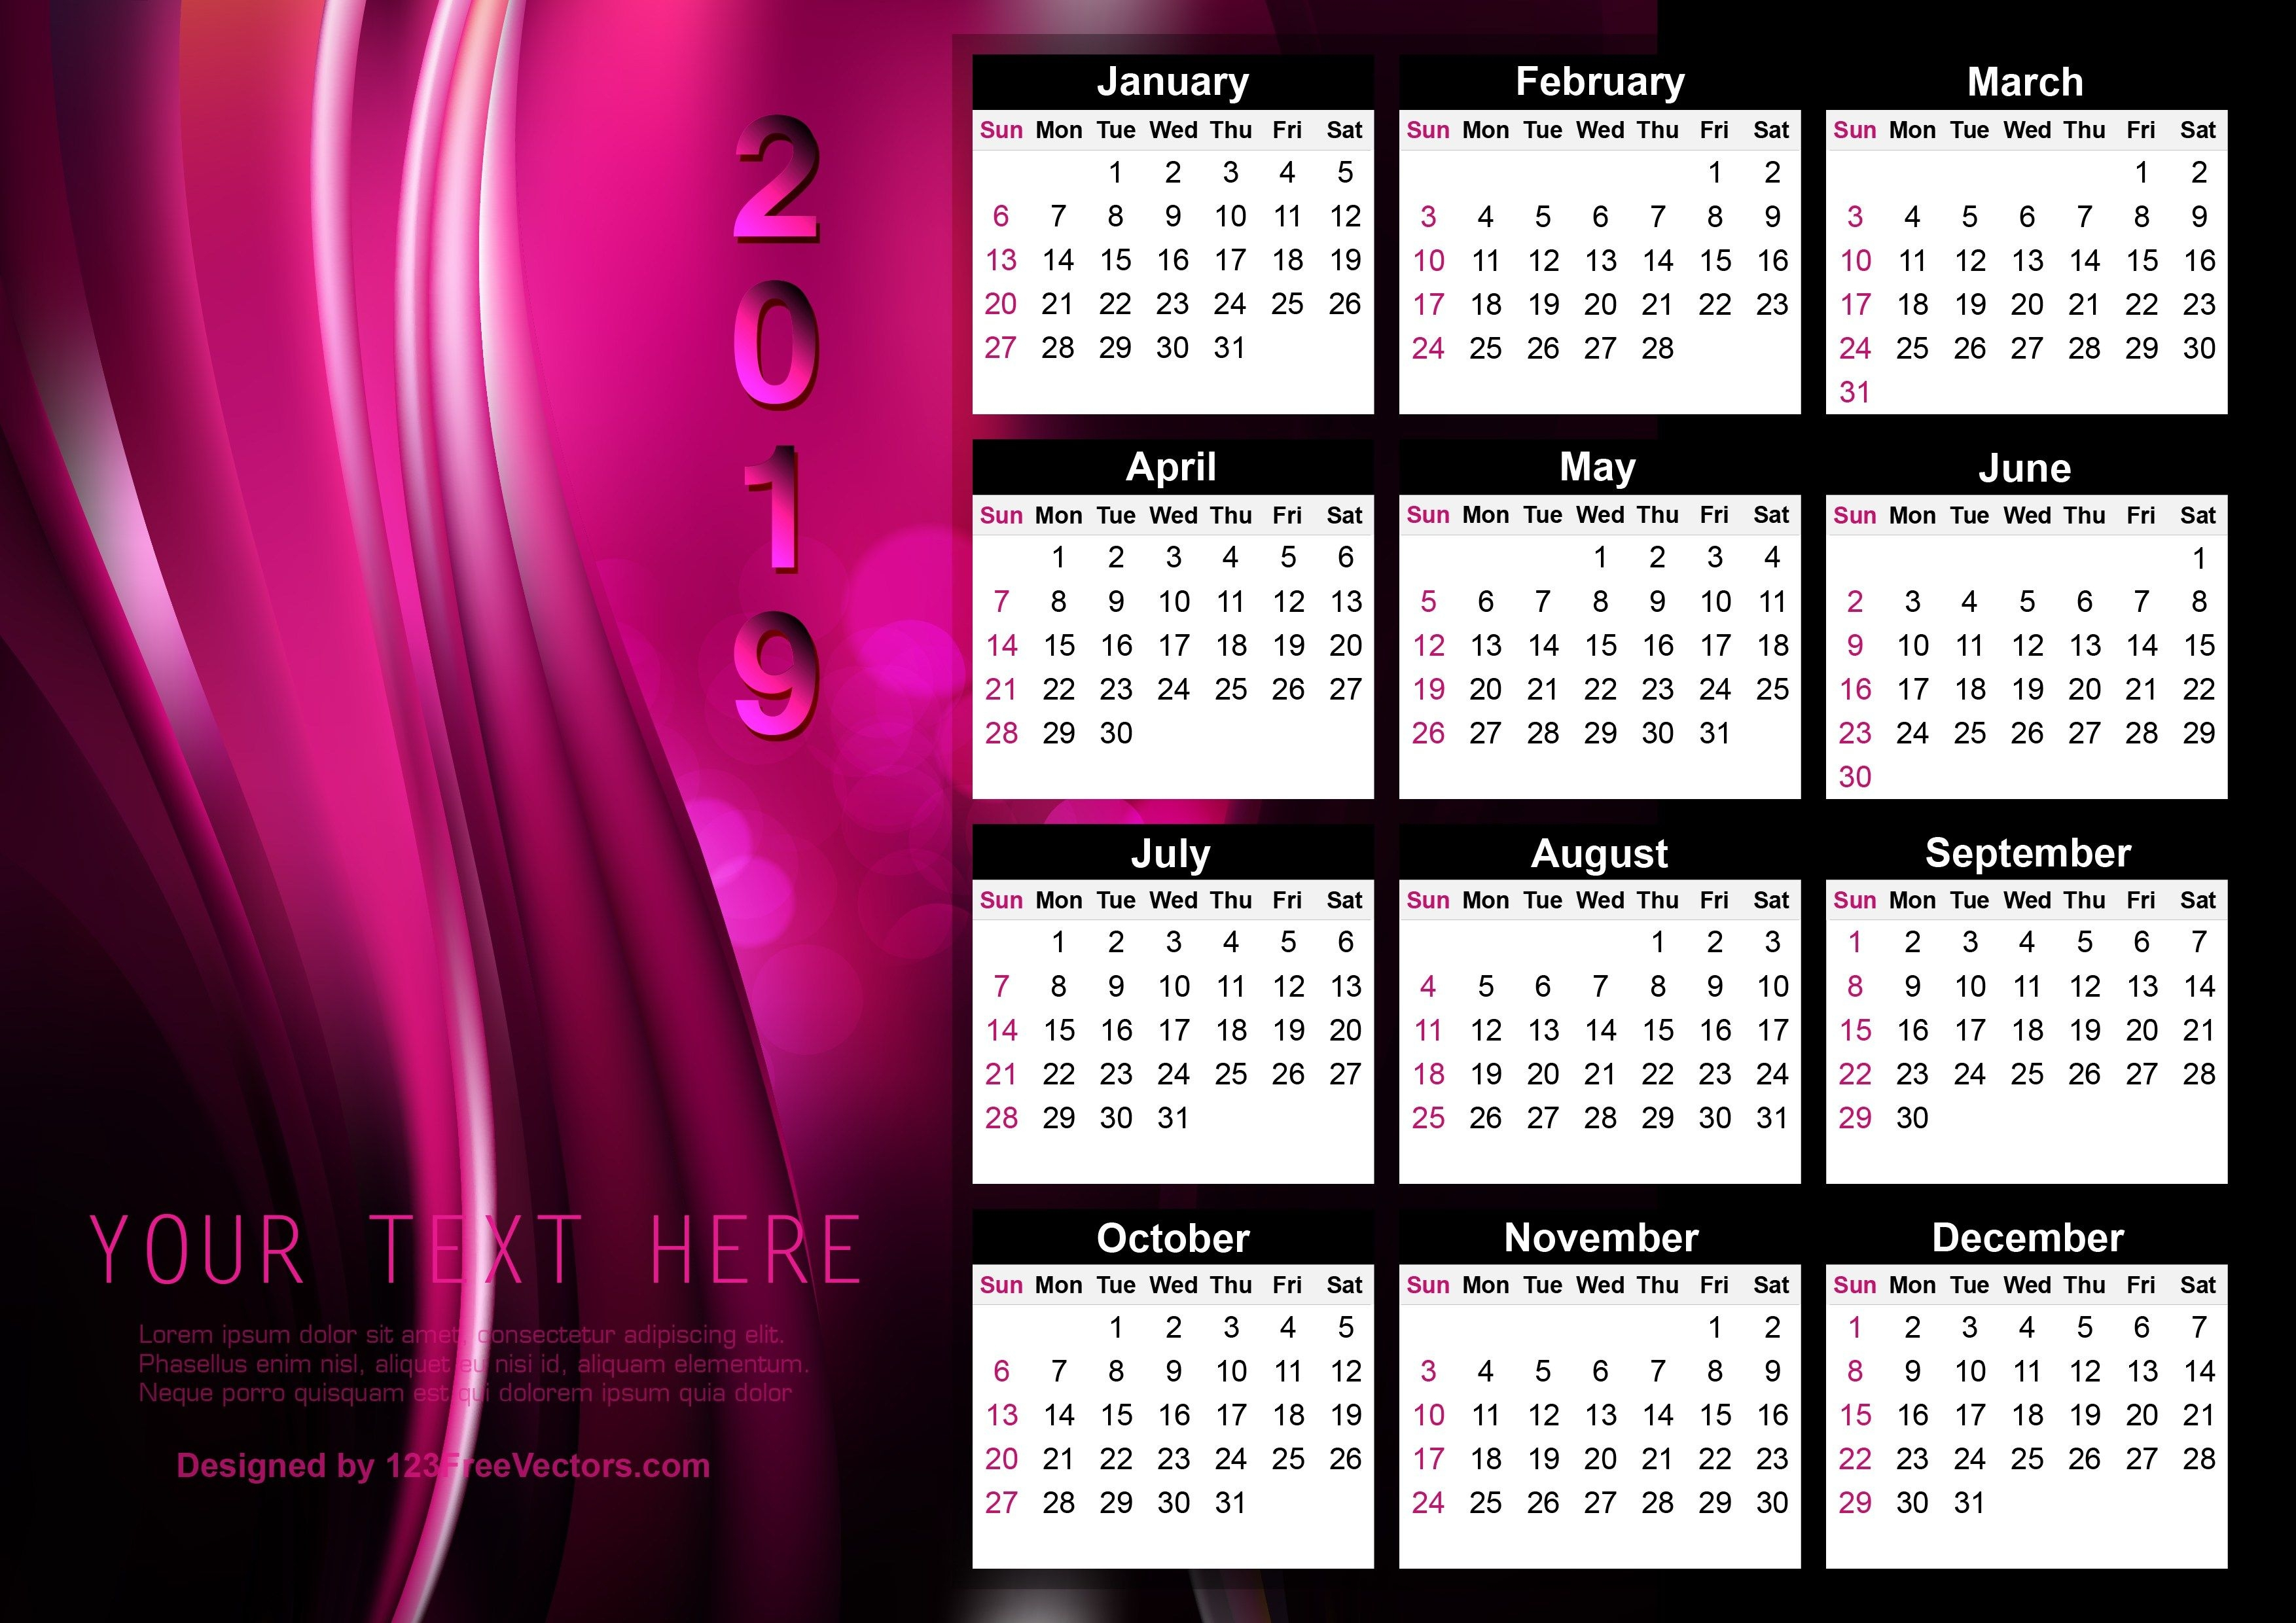 Printable Free August 2019 Calendar Template With Clown | Calendar for Printable Free August Calendar Template With Clown